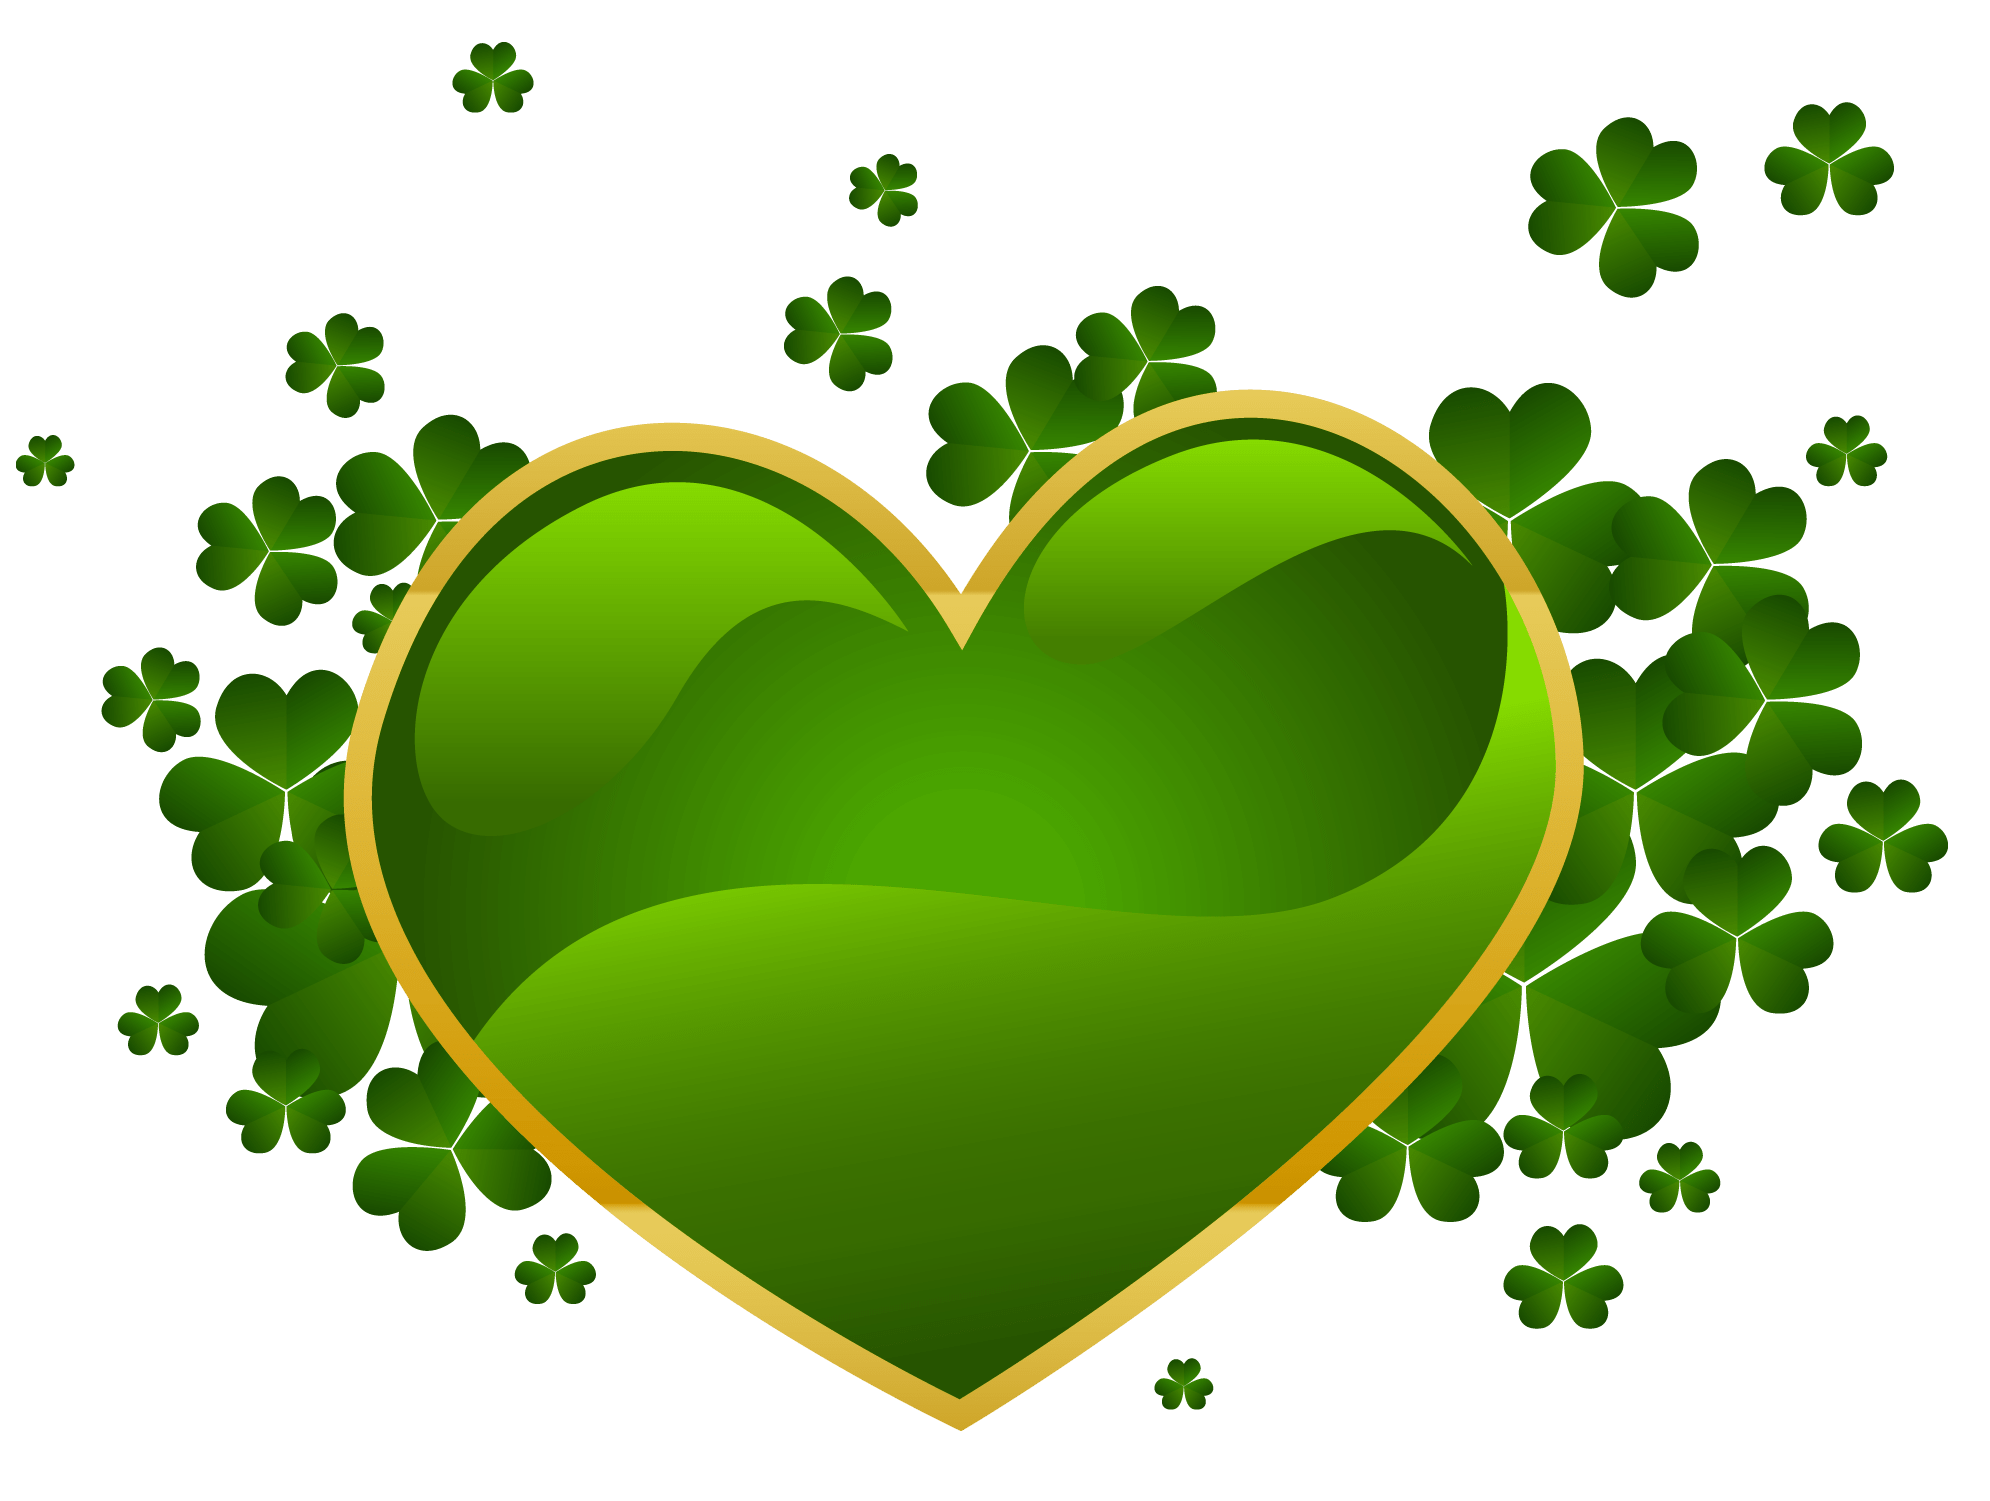 hight resolution of st patricks day heart with shamrock clipart